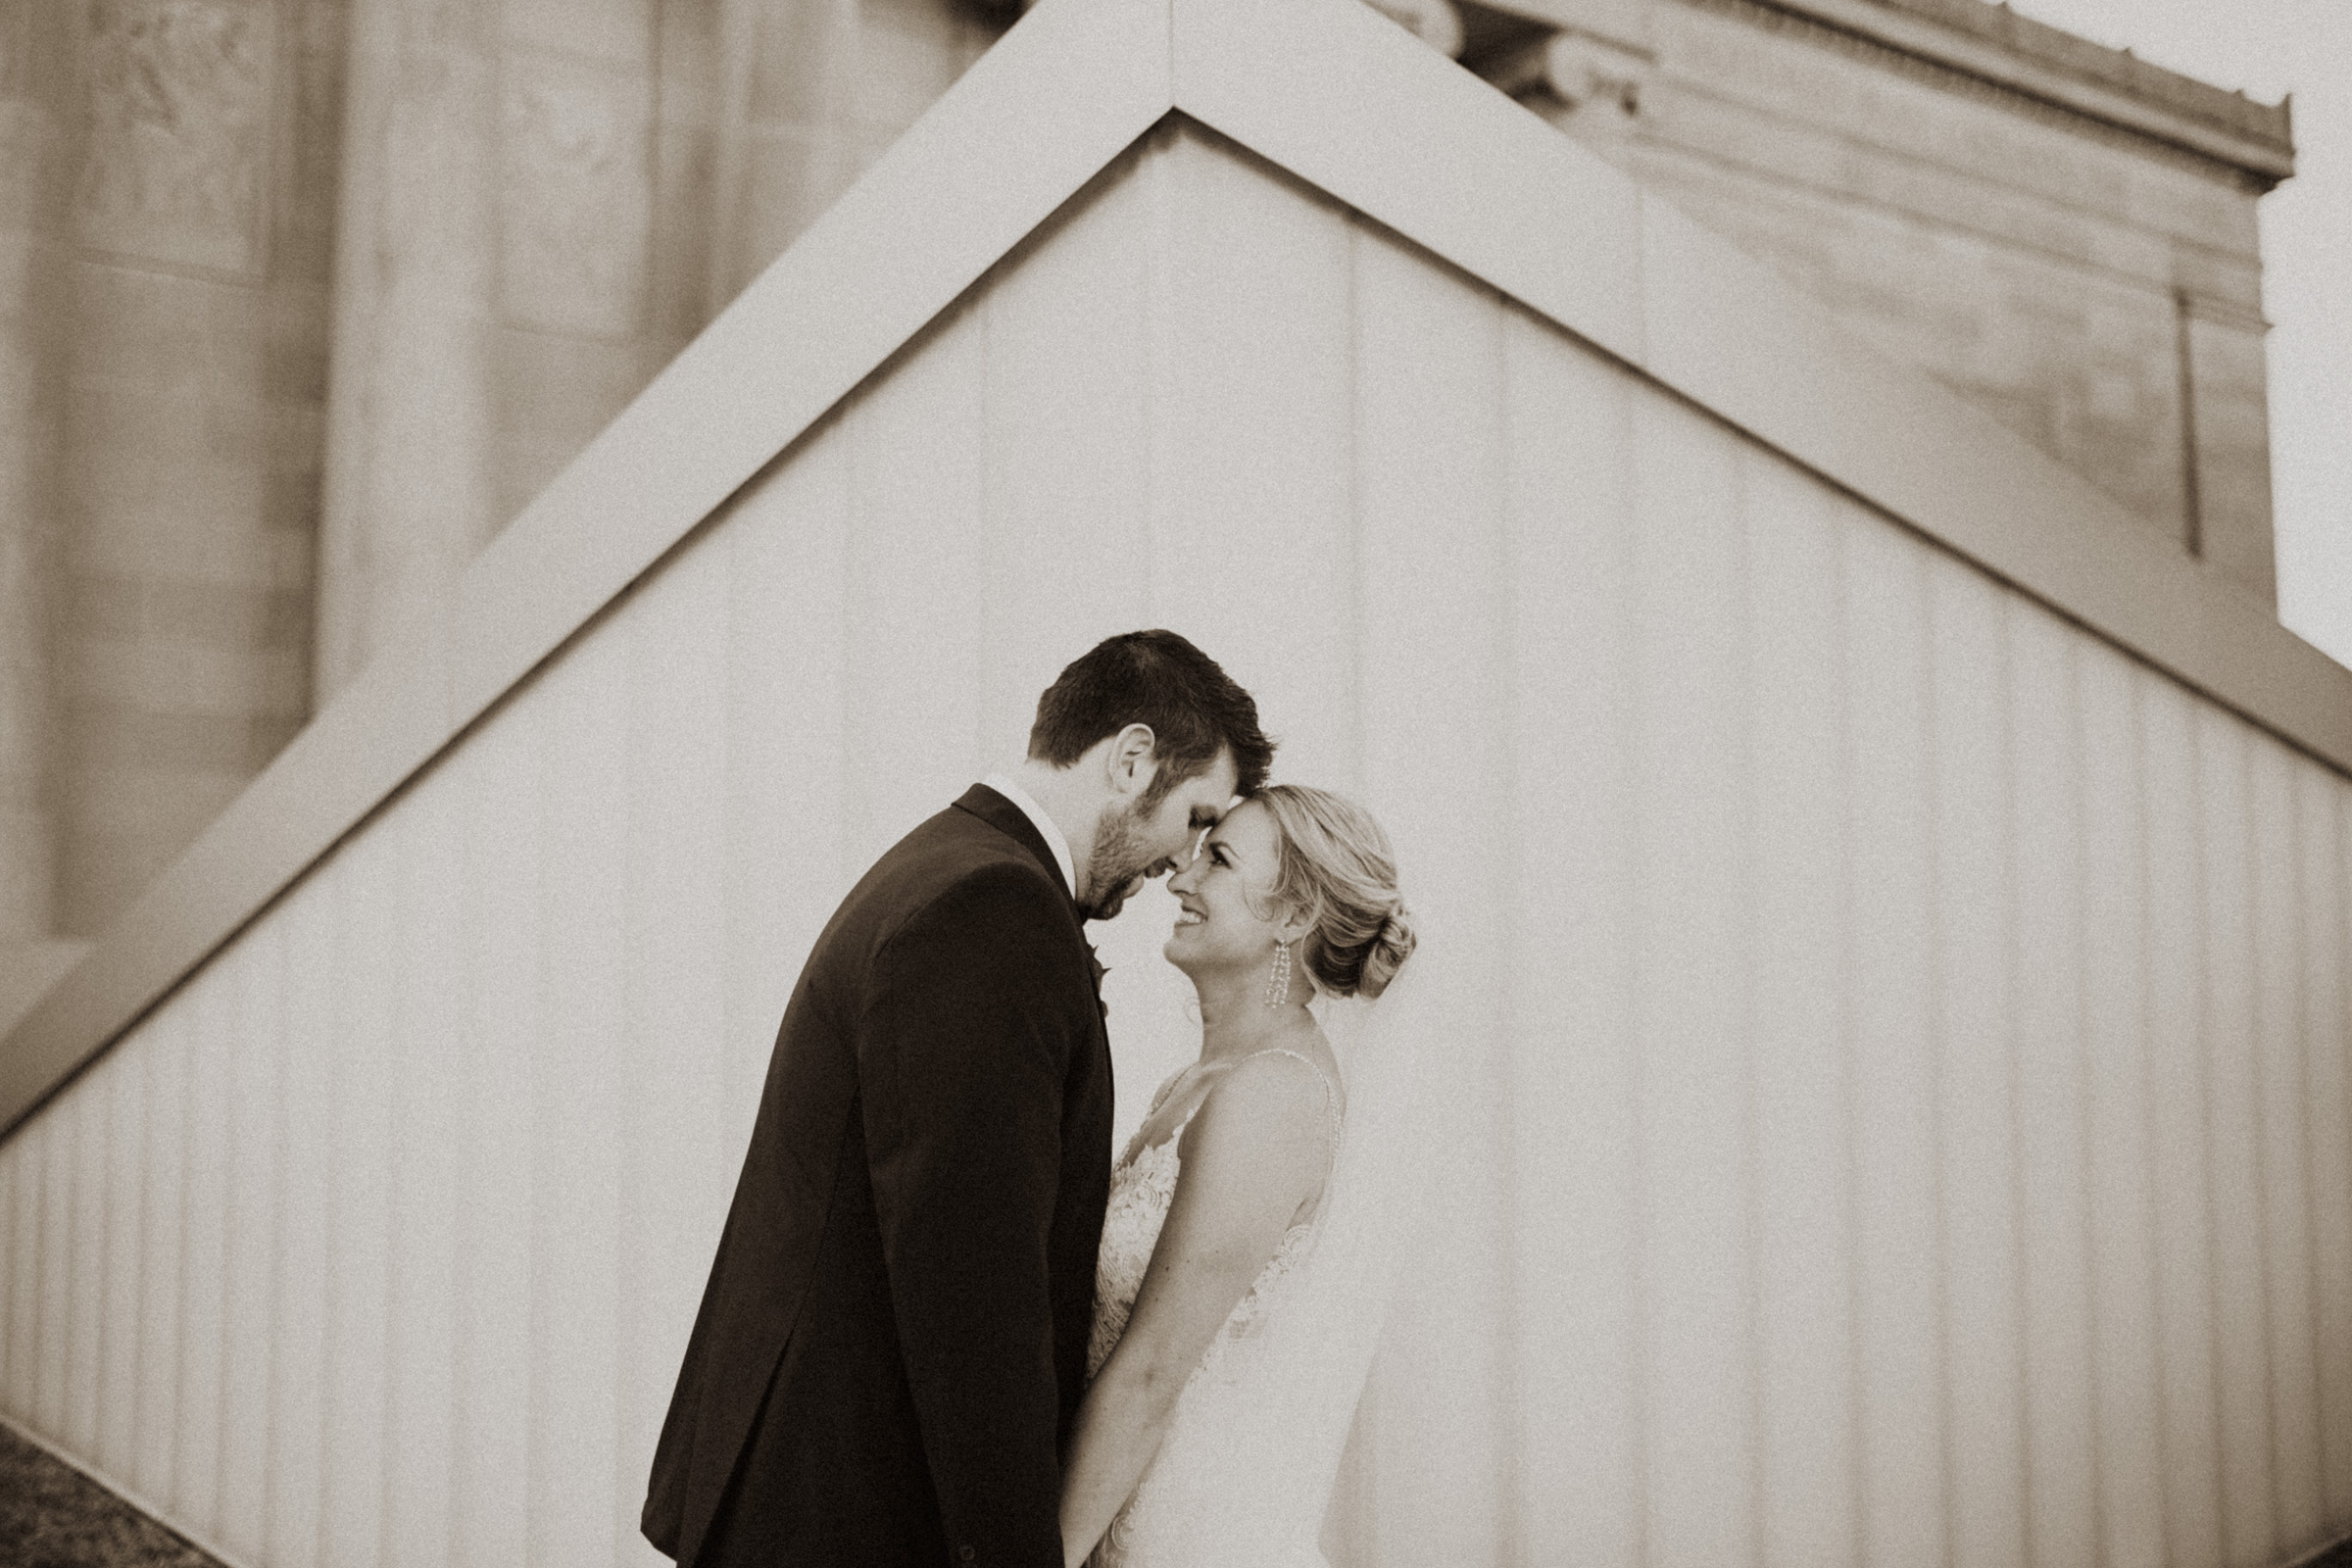 alyssa barletter photography nelson atkins museum intimate romantic spring wedding pilgrim chapel kcmo-26.jpg